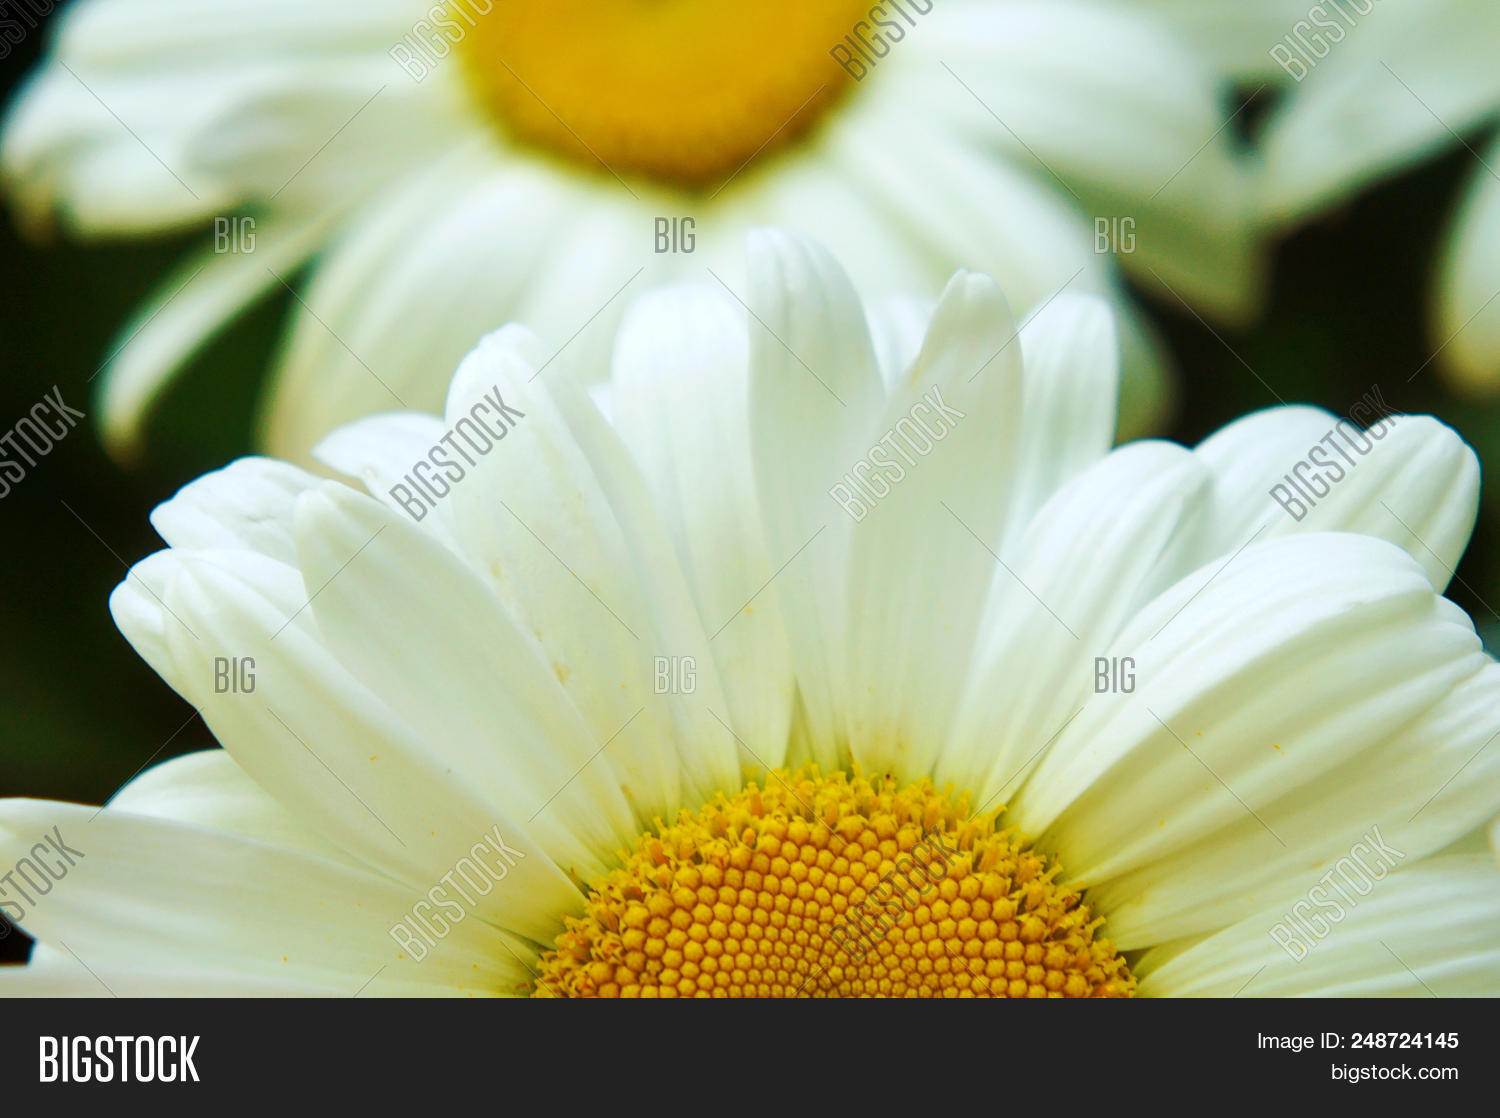 White Big Daisy Flower Image Photo Free Trial Bigstock